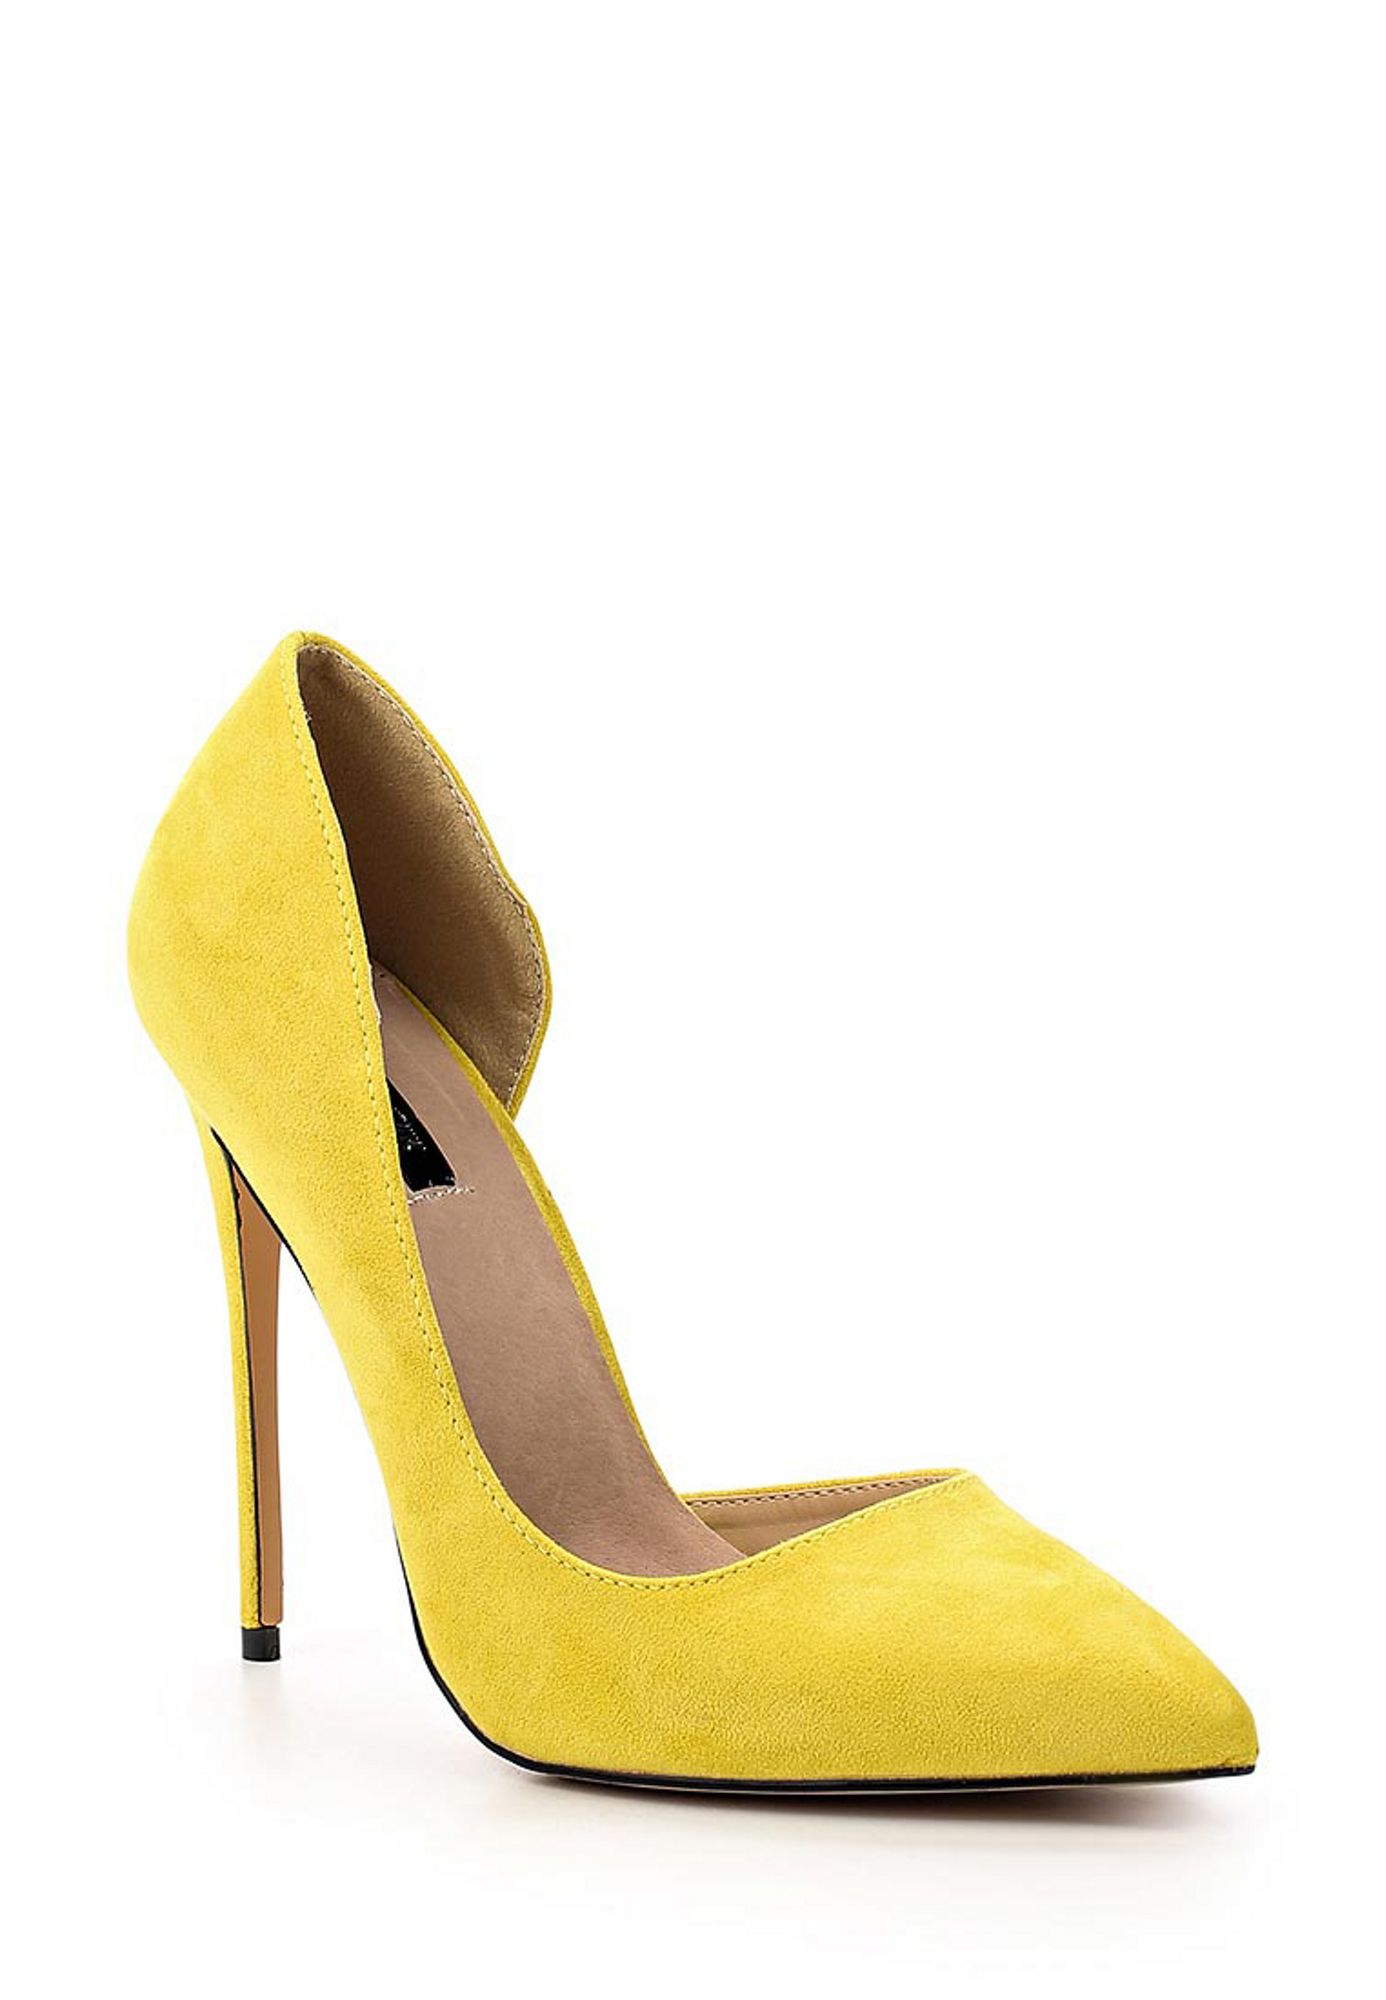 Yellow Court Shoes | Shop Court Heels - House of Fraser